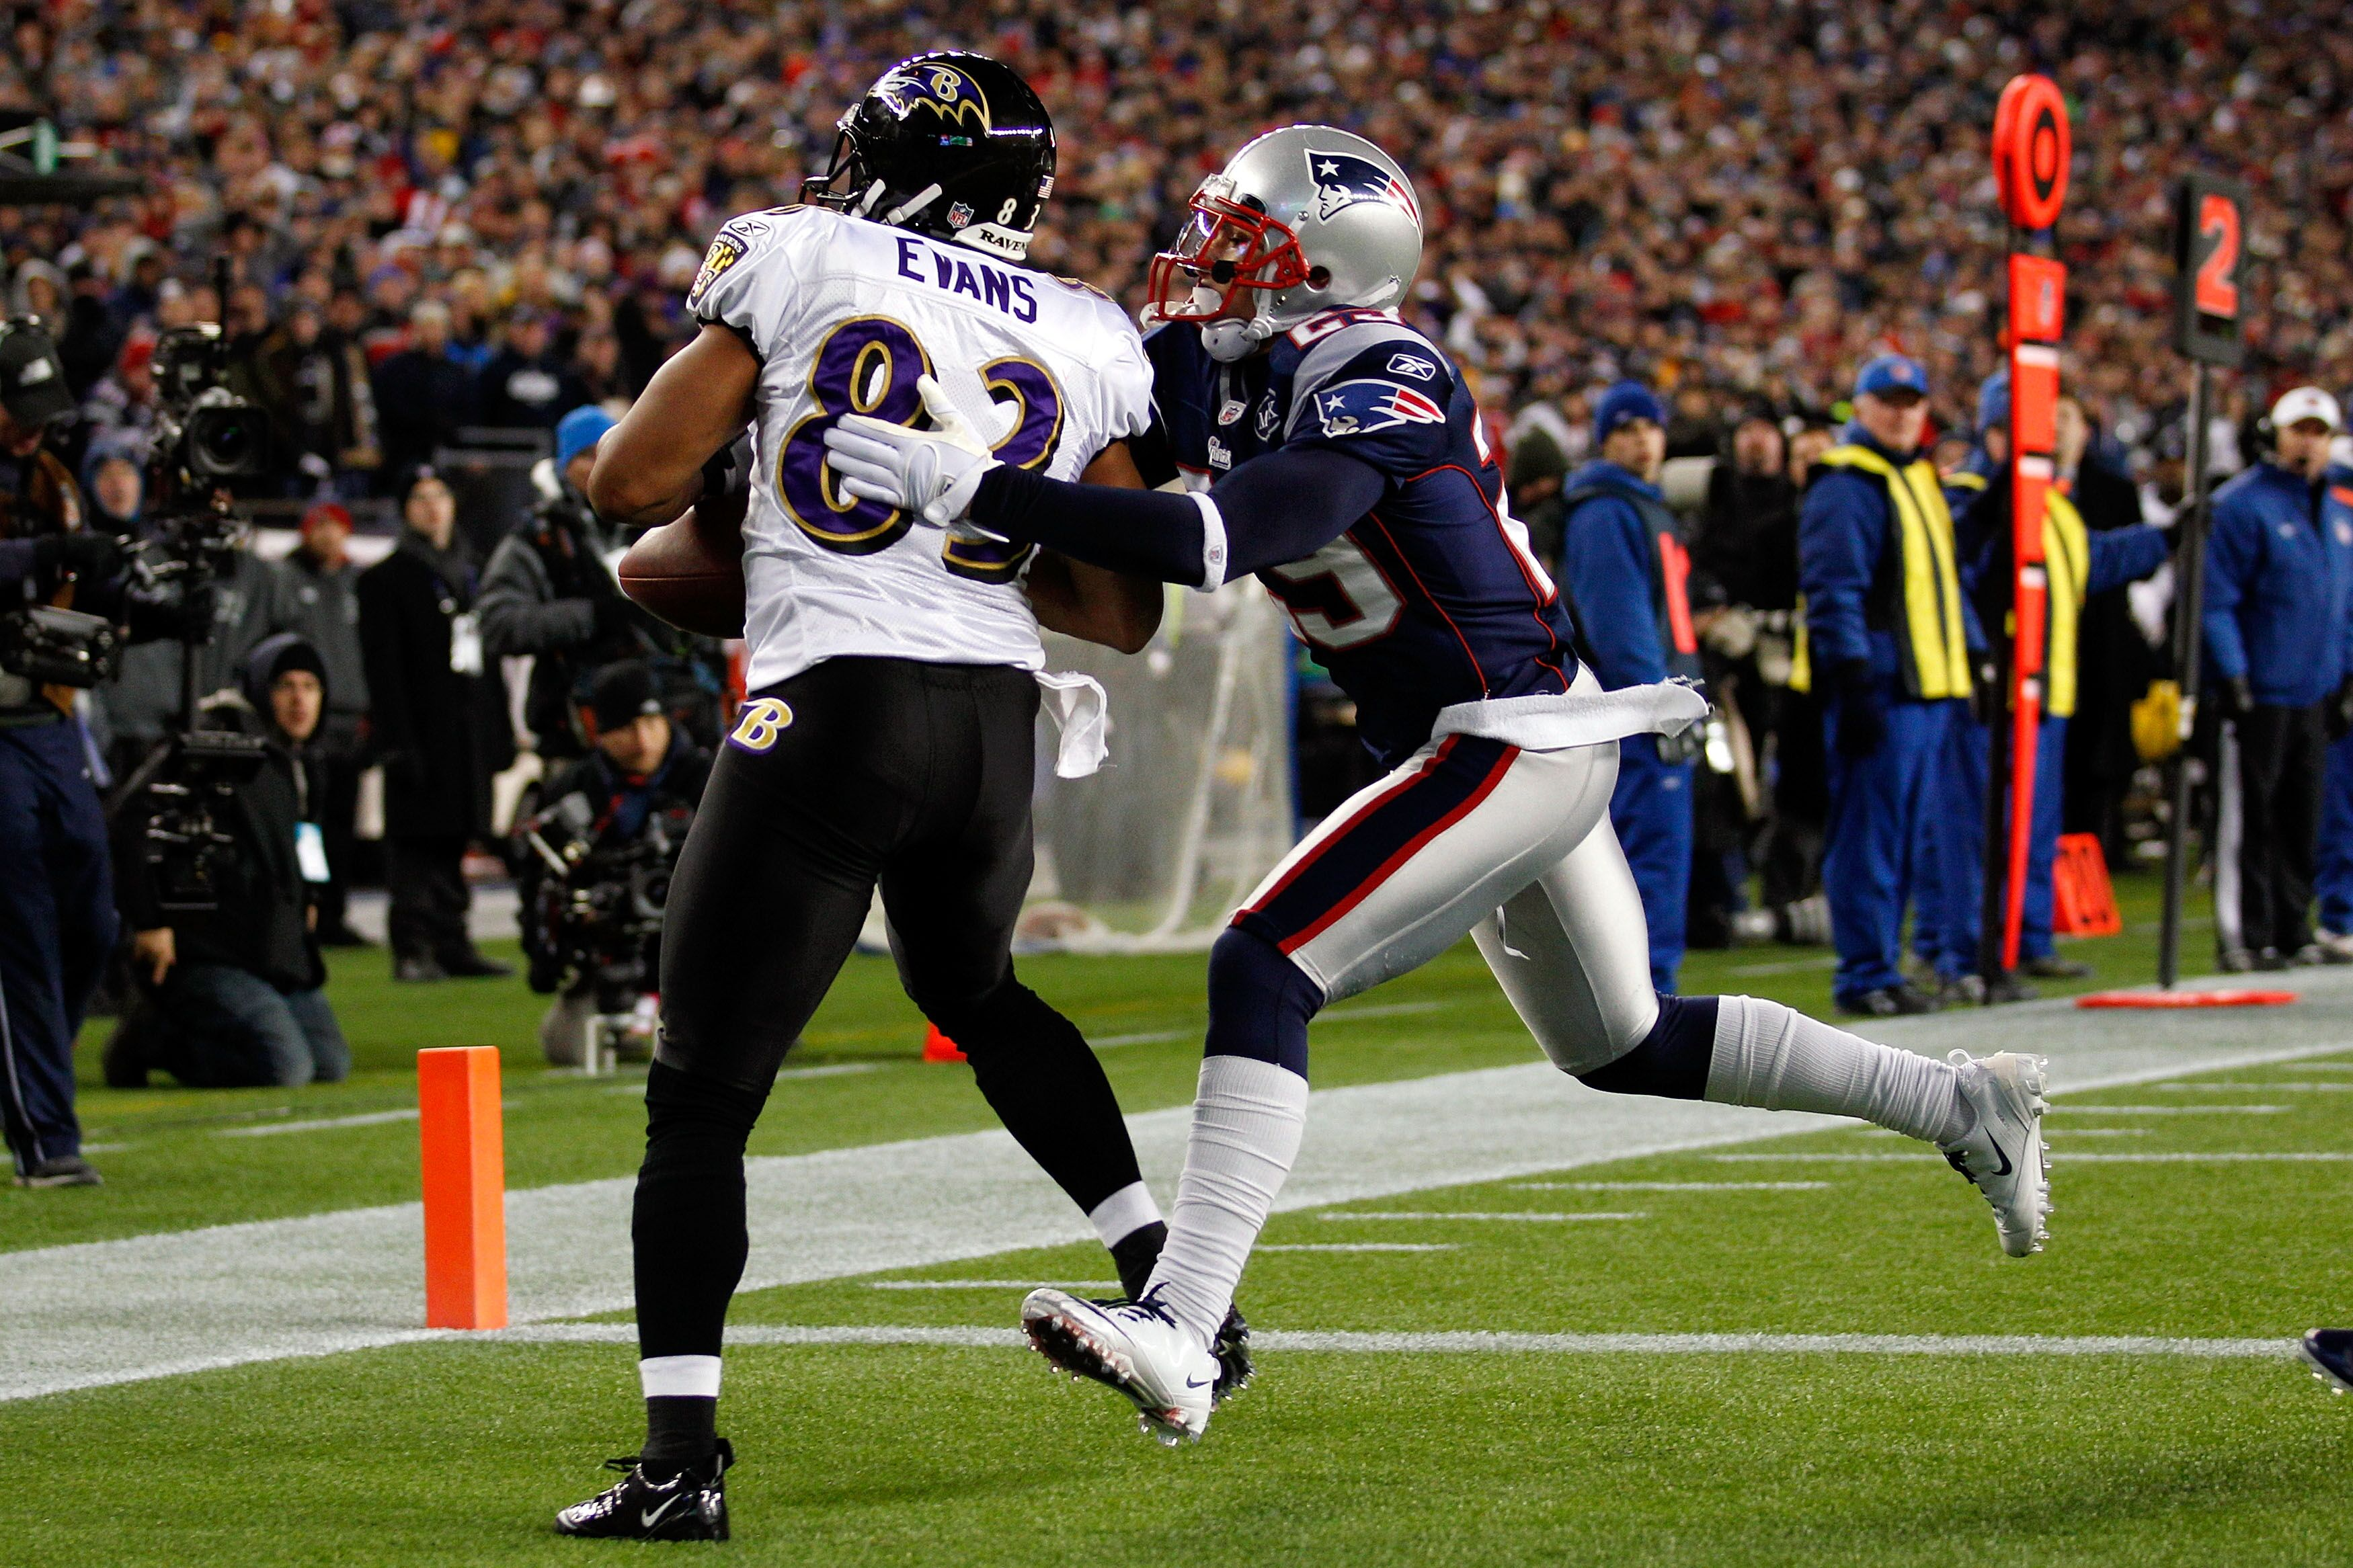 The Top 5 Greatest AFC Championship Games in NFL History